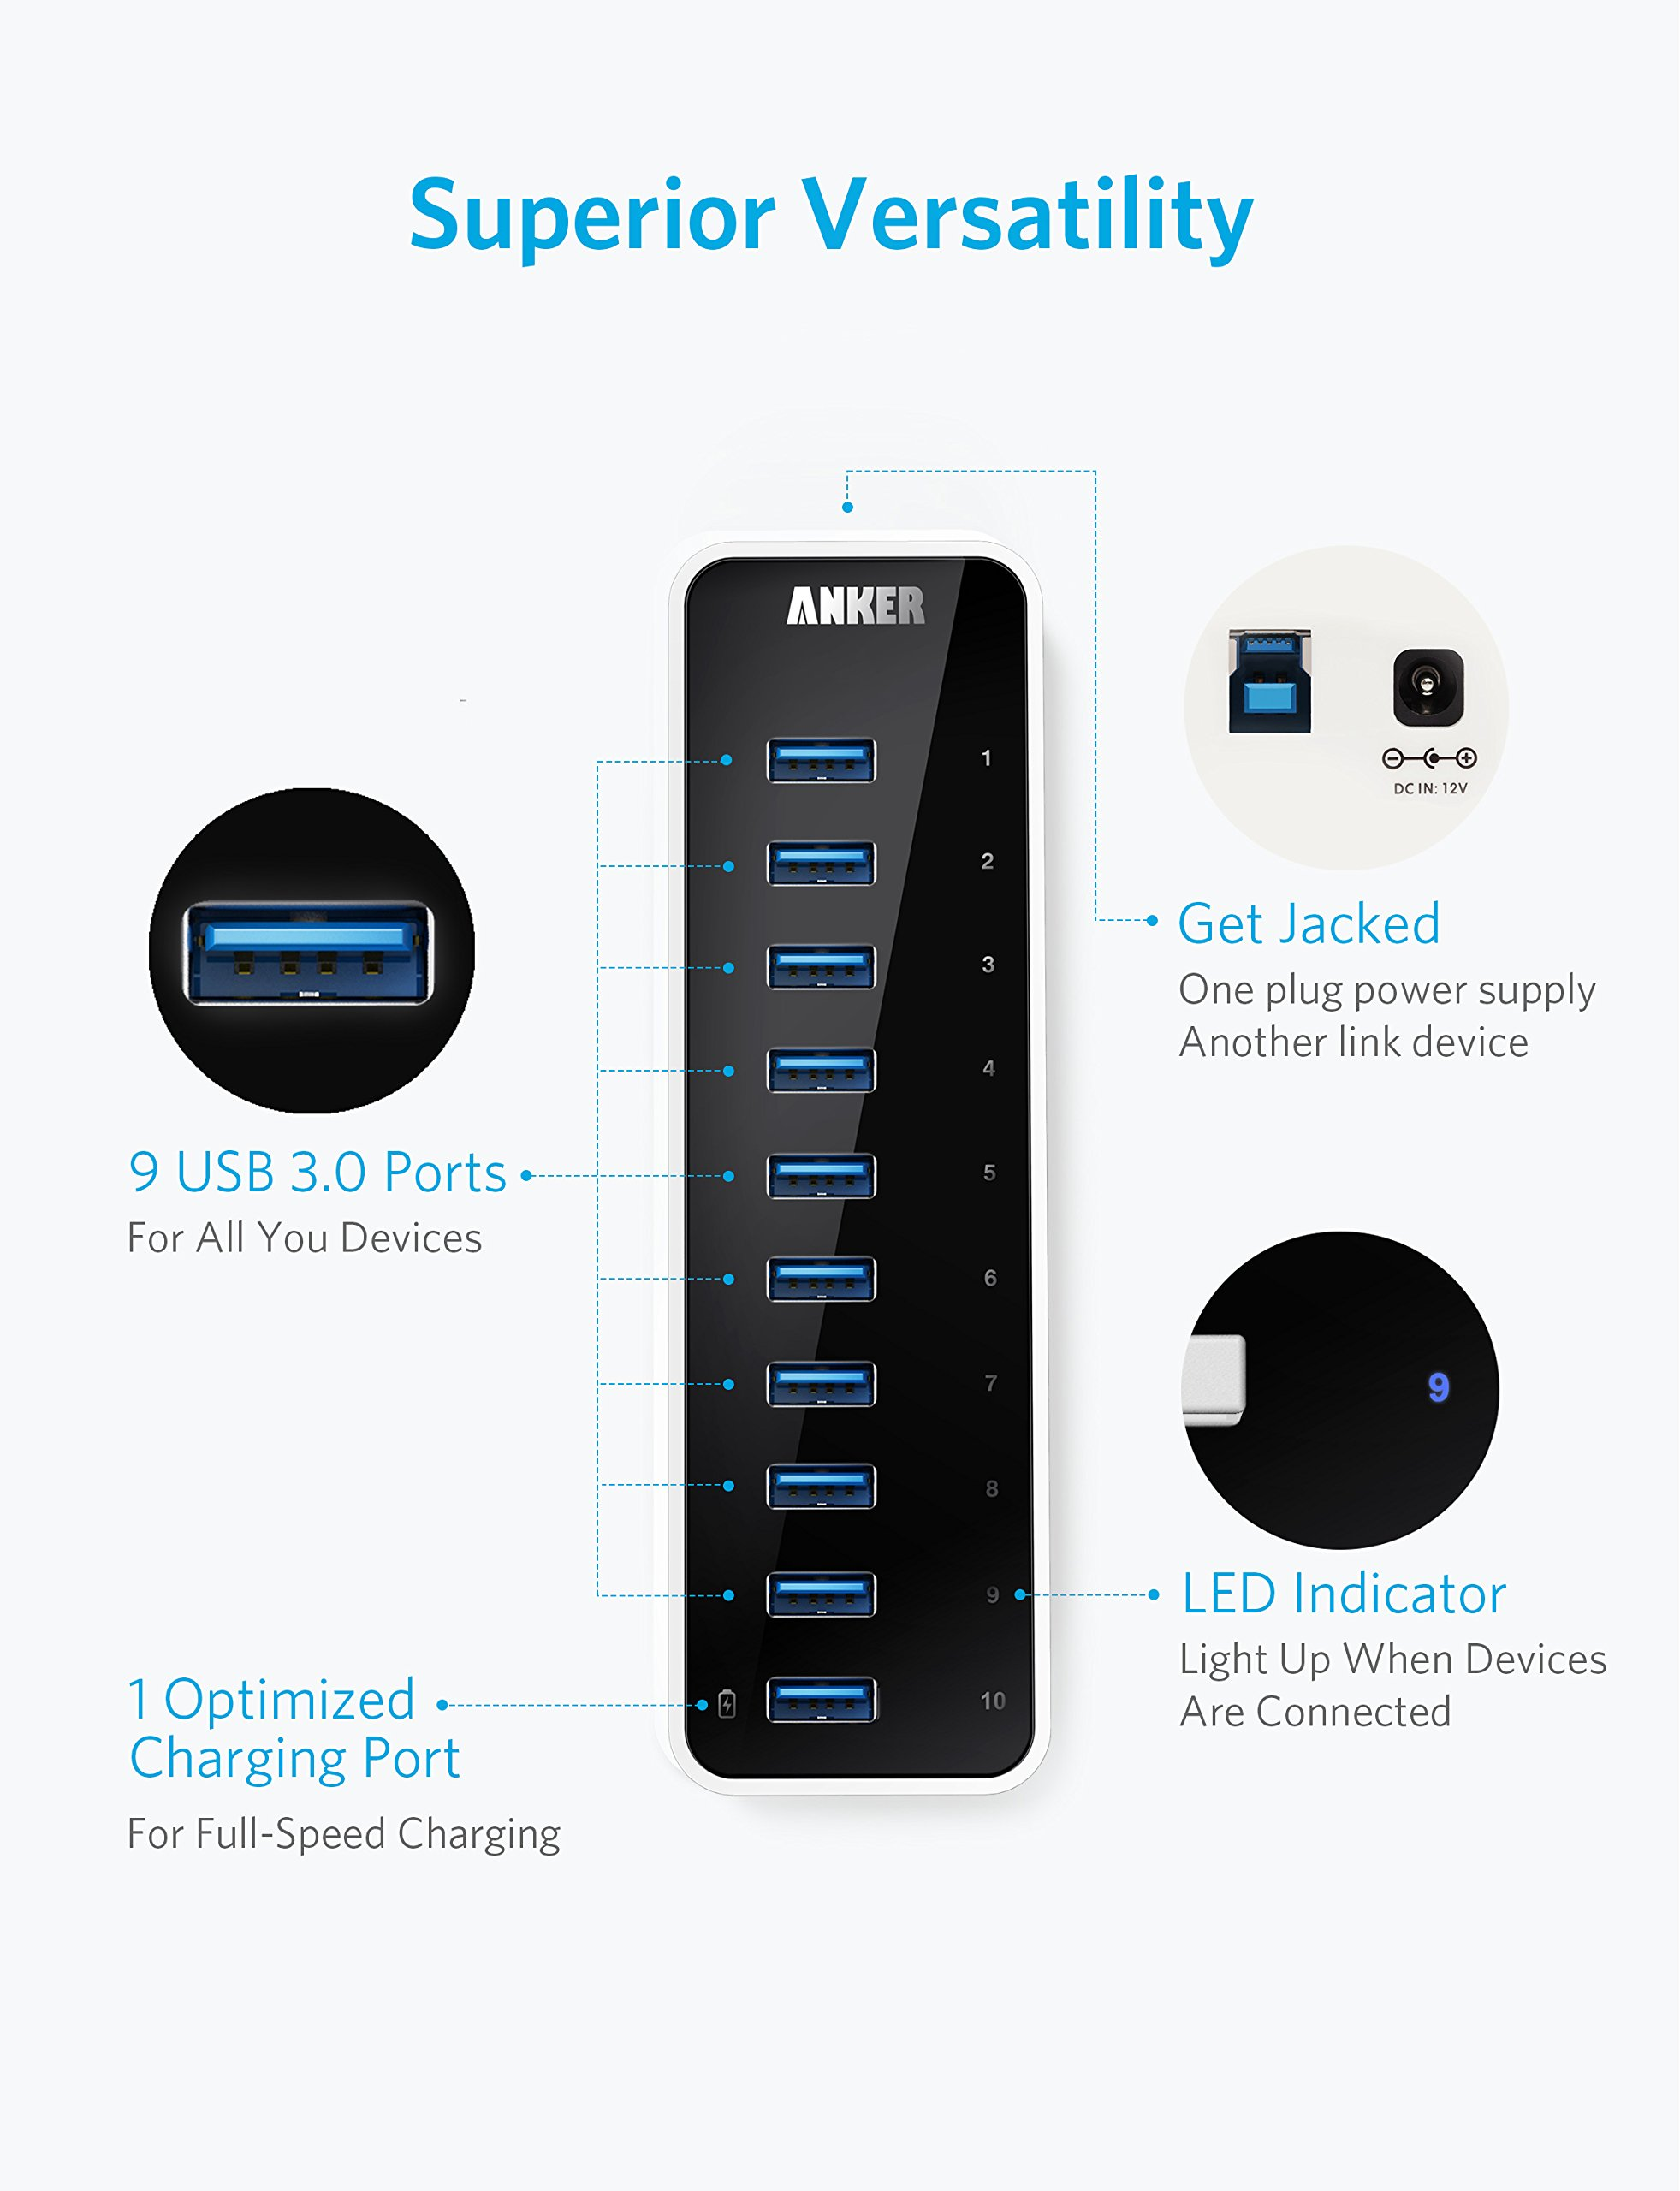 Anker USB 3.0 9-Port Hub + 5V 2.1A Smart Charging Port with 12V 5A Power Adapter by Anker (Image #7)